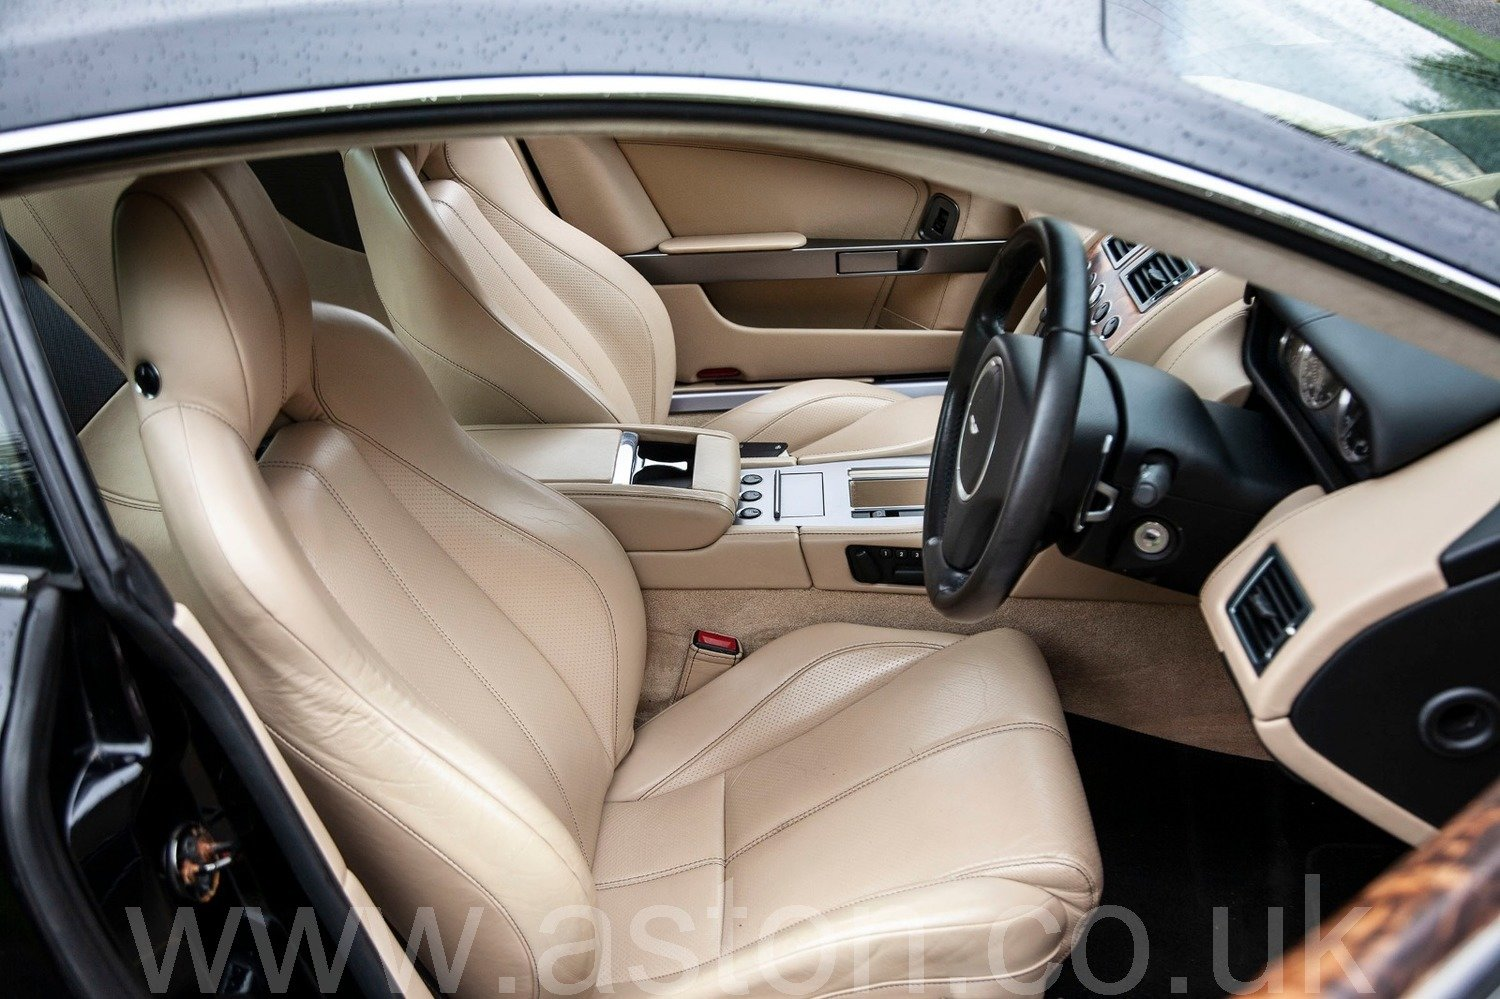 2009 Aston Martin DB9 Coupe  SOLD (picture 3 of 6)